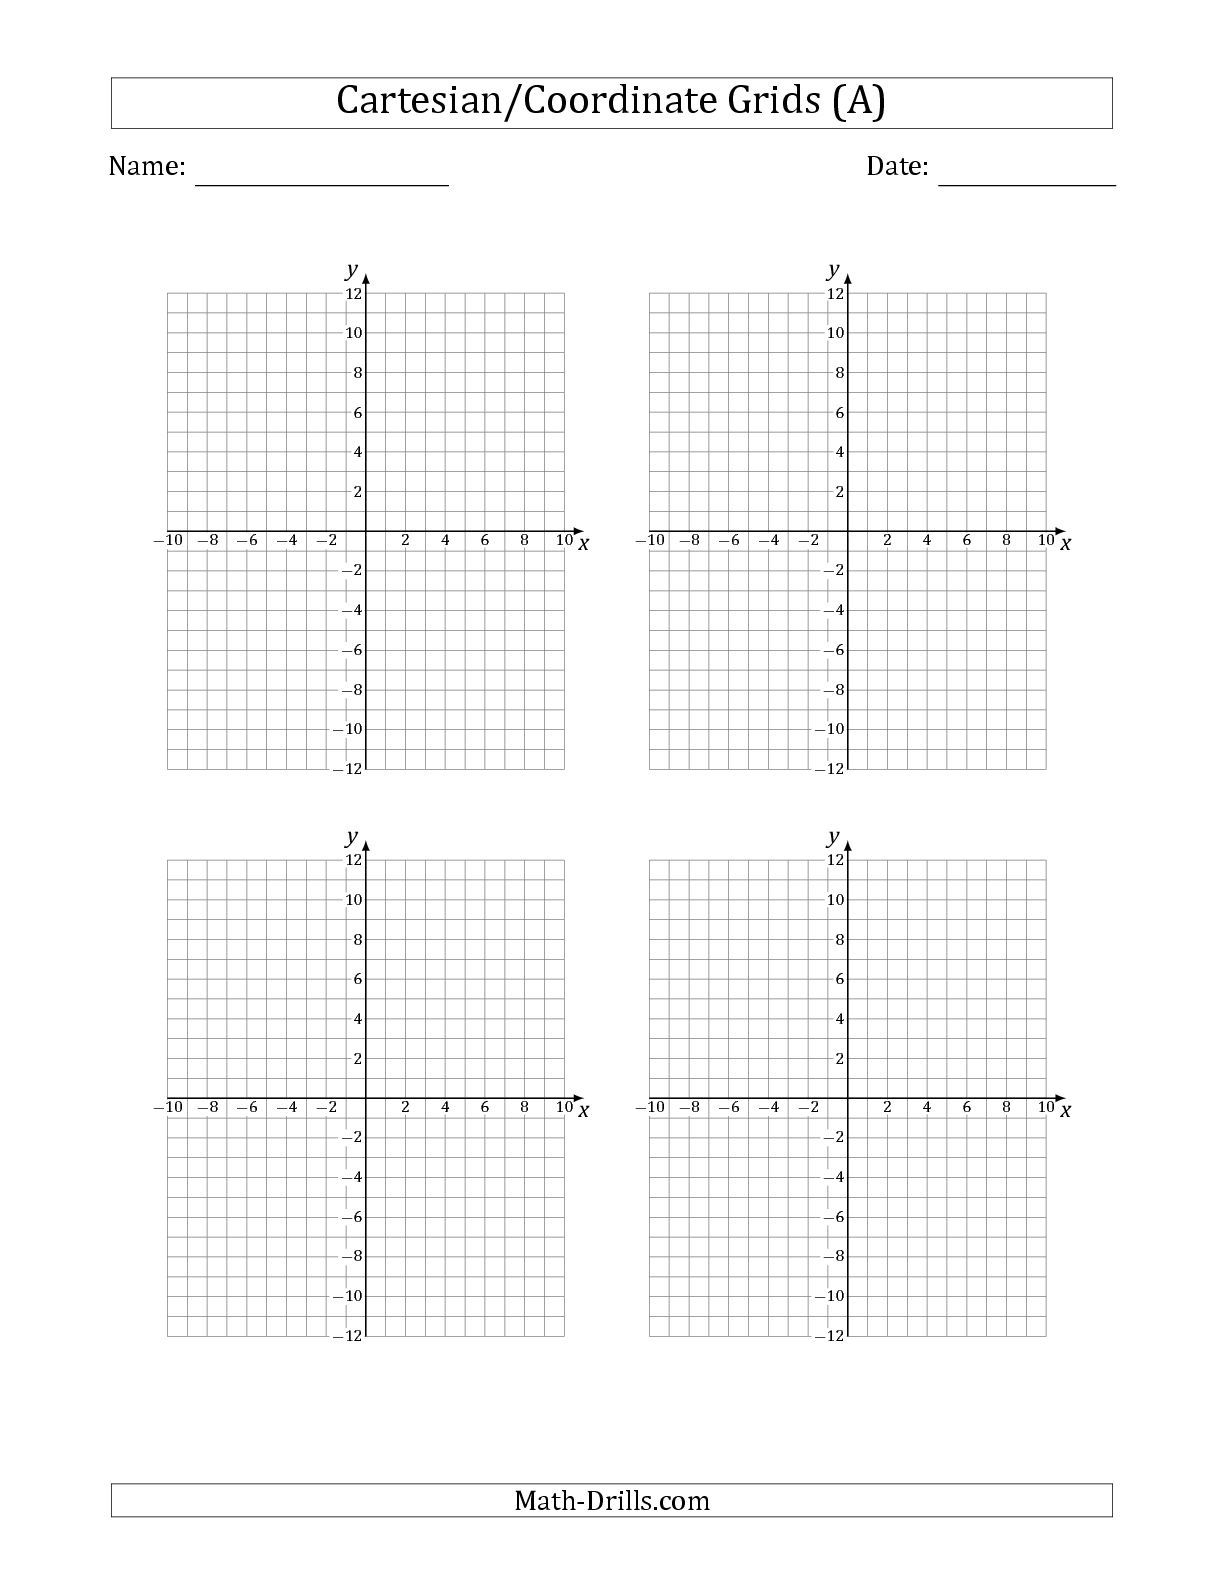 small resolution of The 4 Per Page Cartesian/Coordinate Grids math worksheet from the Graph  Paper page at Mat…   Coordinate grid